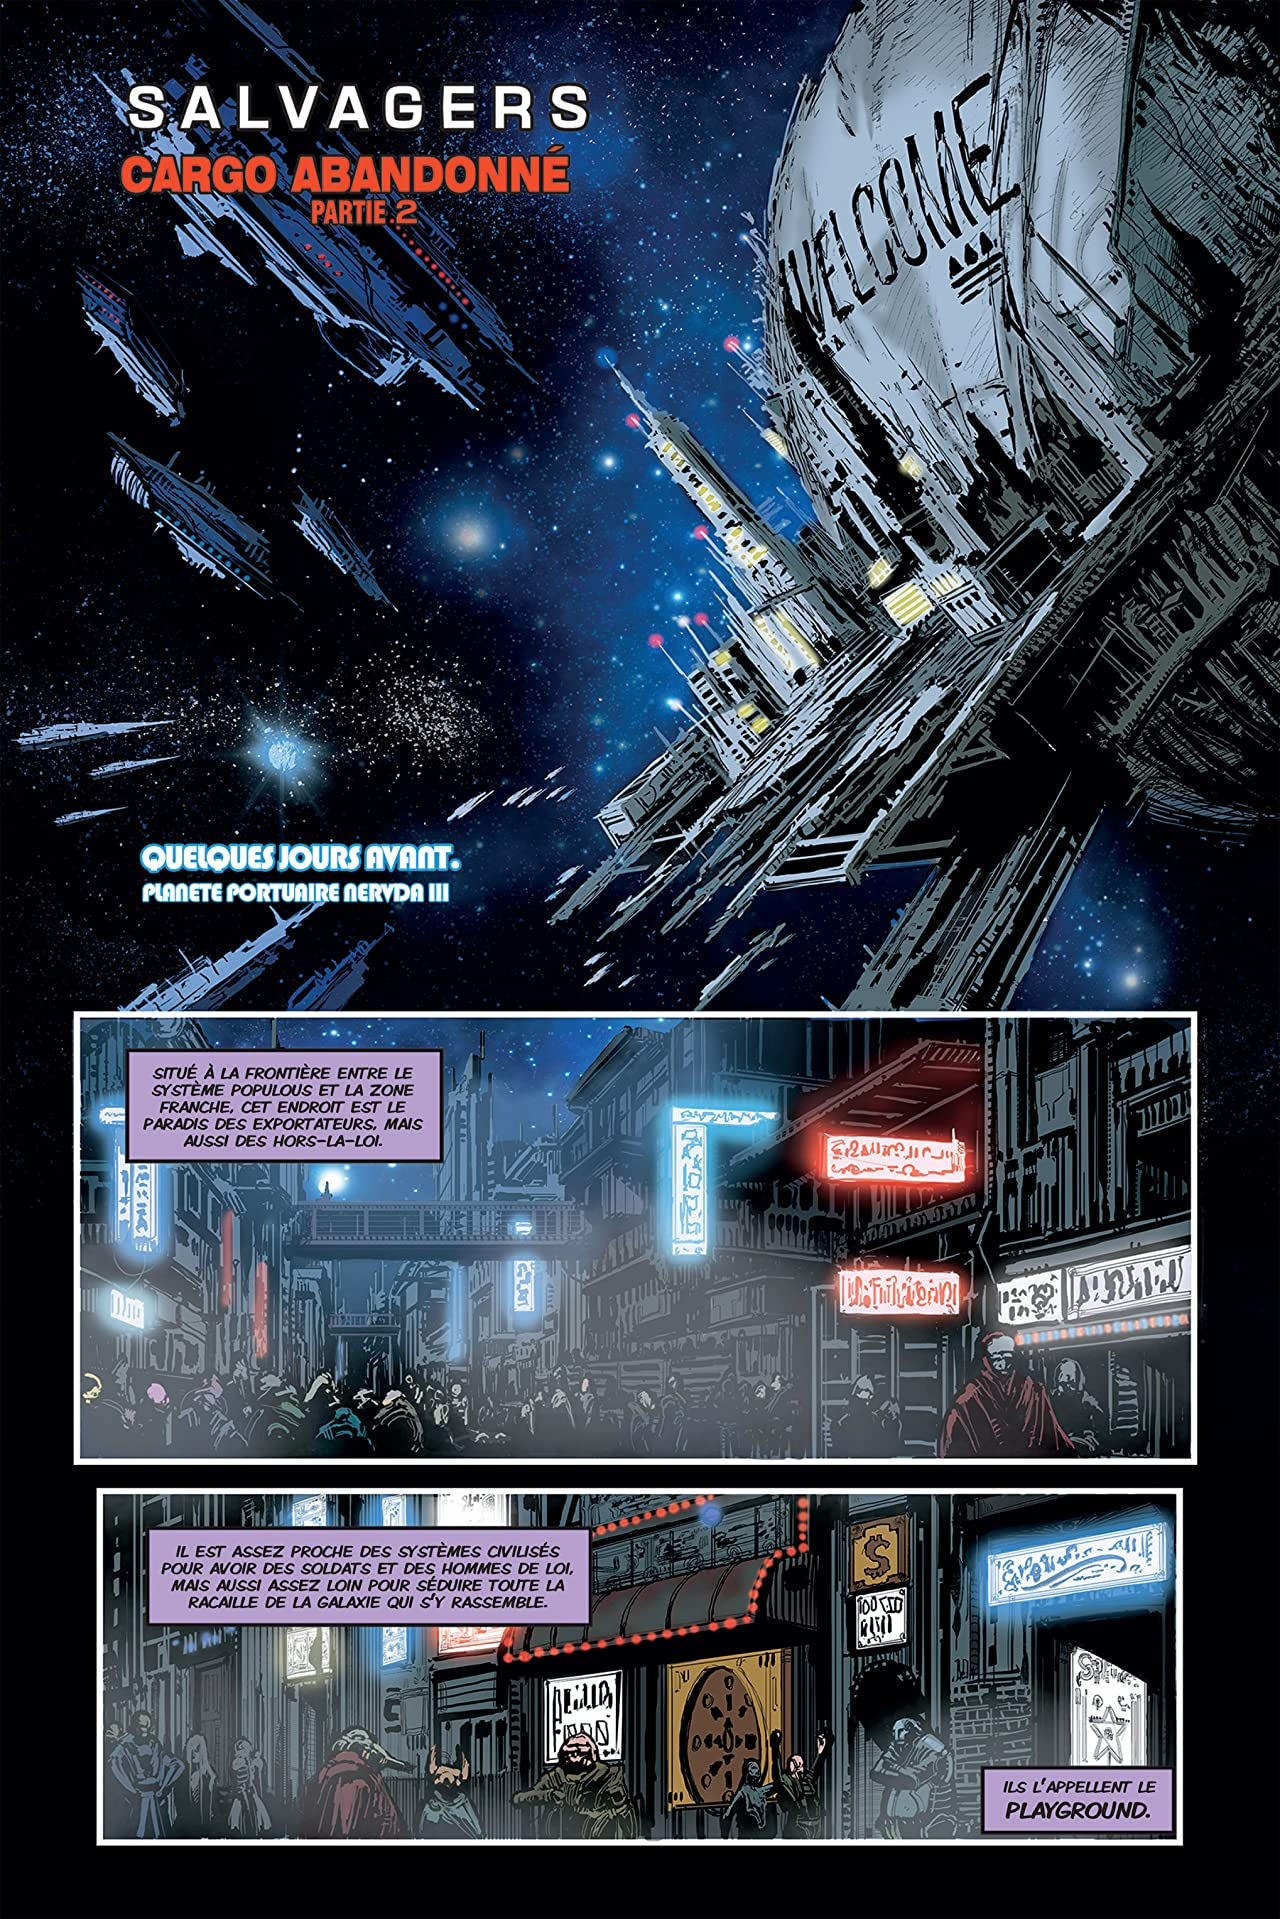 Salvagers #2